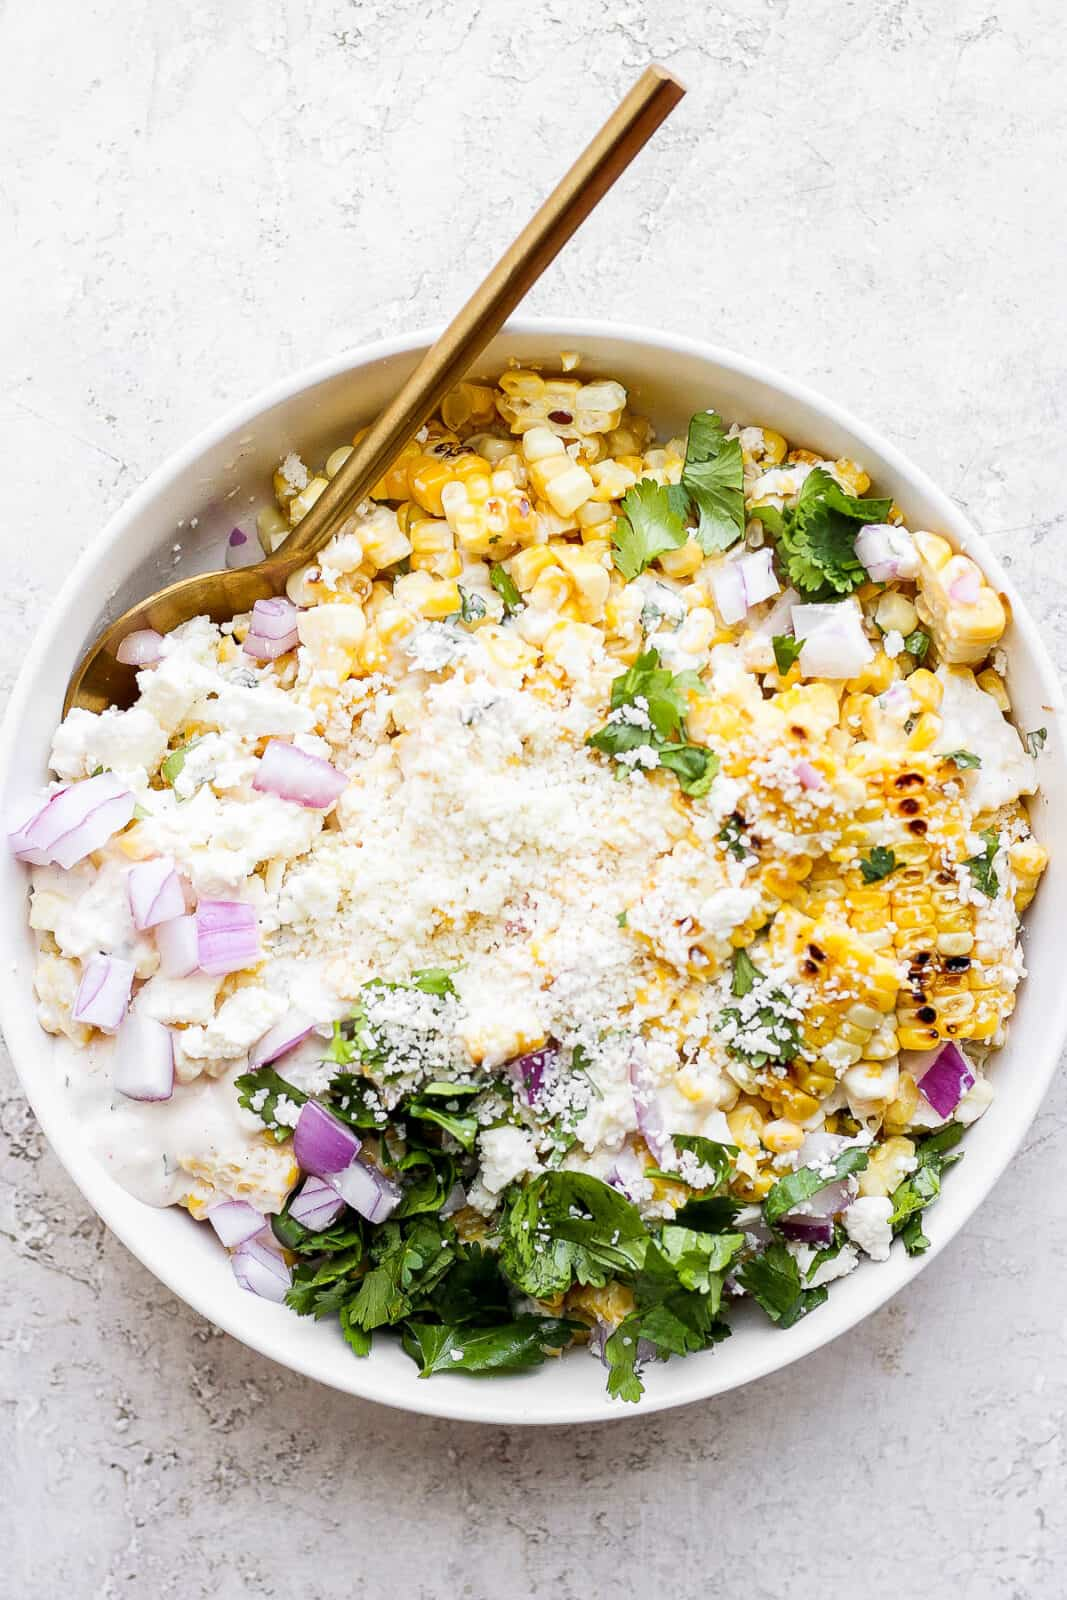 Mexican street corn salad in a bowl with a spoon.